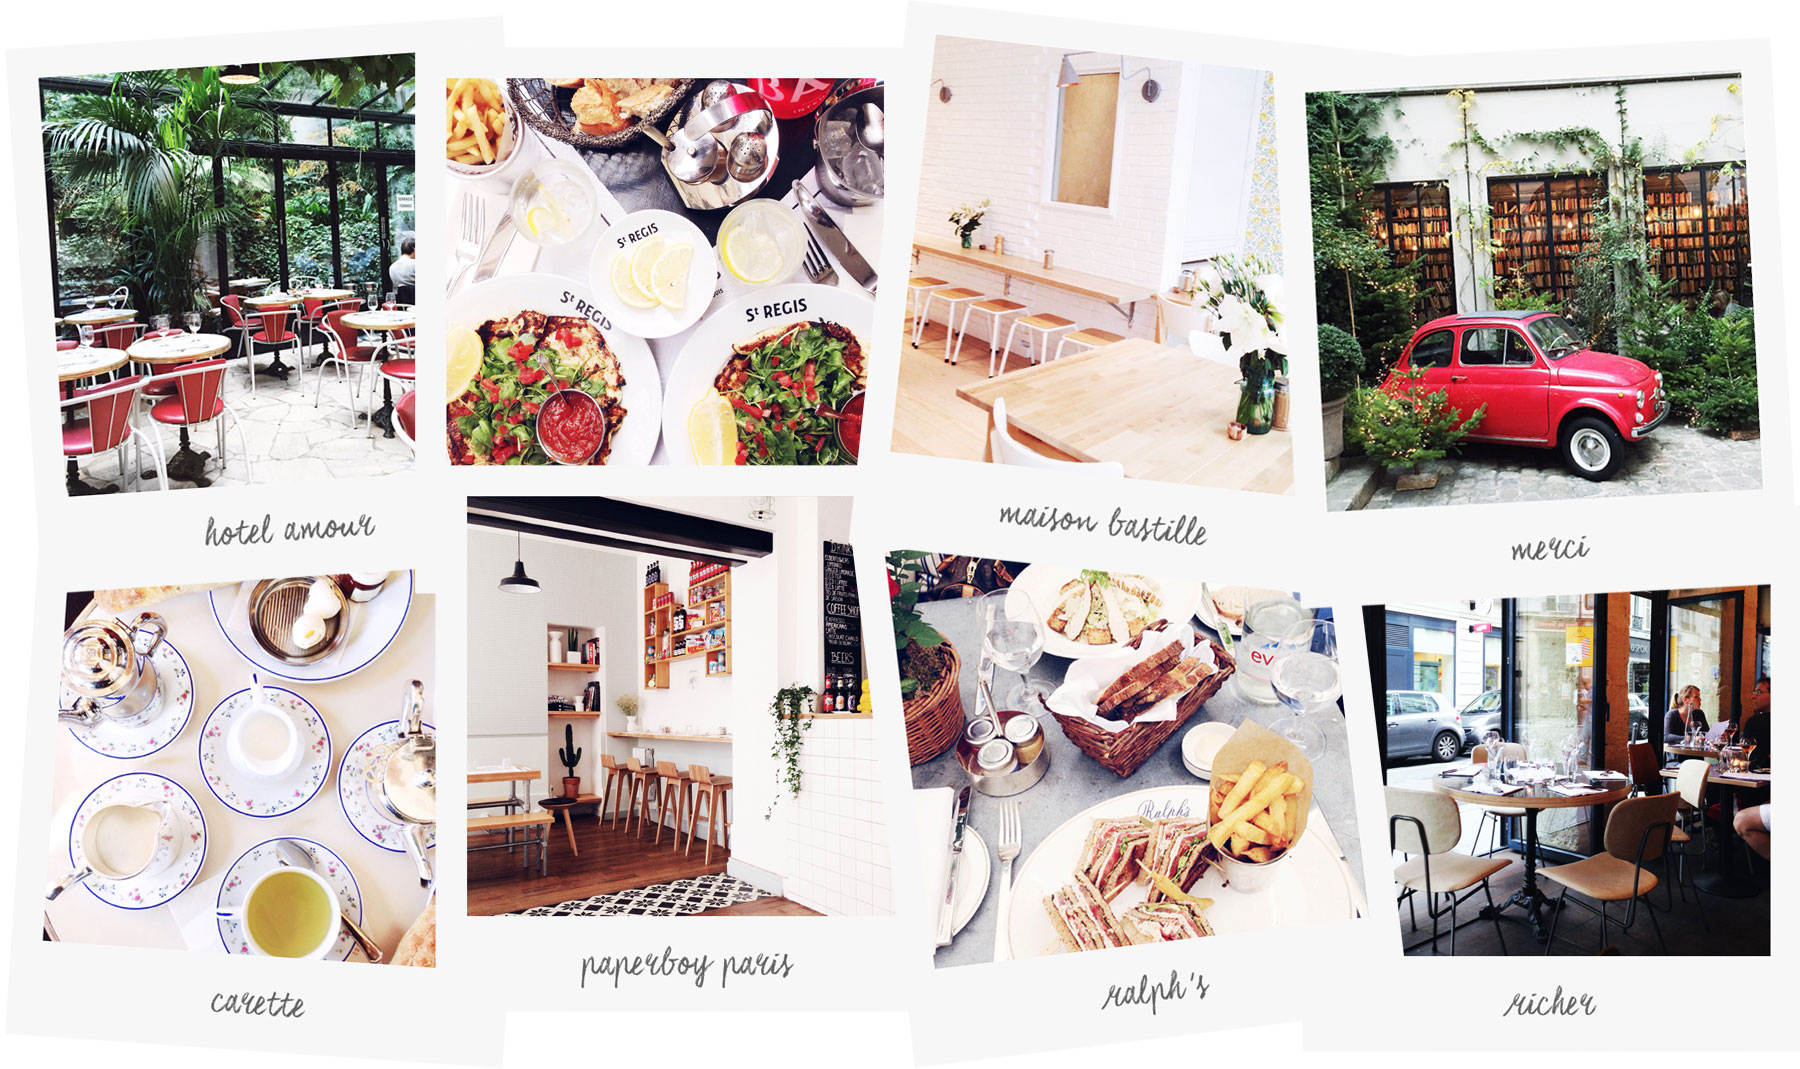 Food in Paris by Carin Olsson (Paris in Four Months)